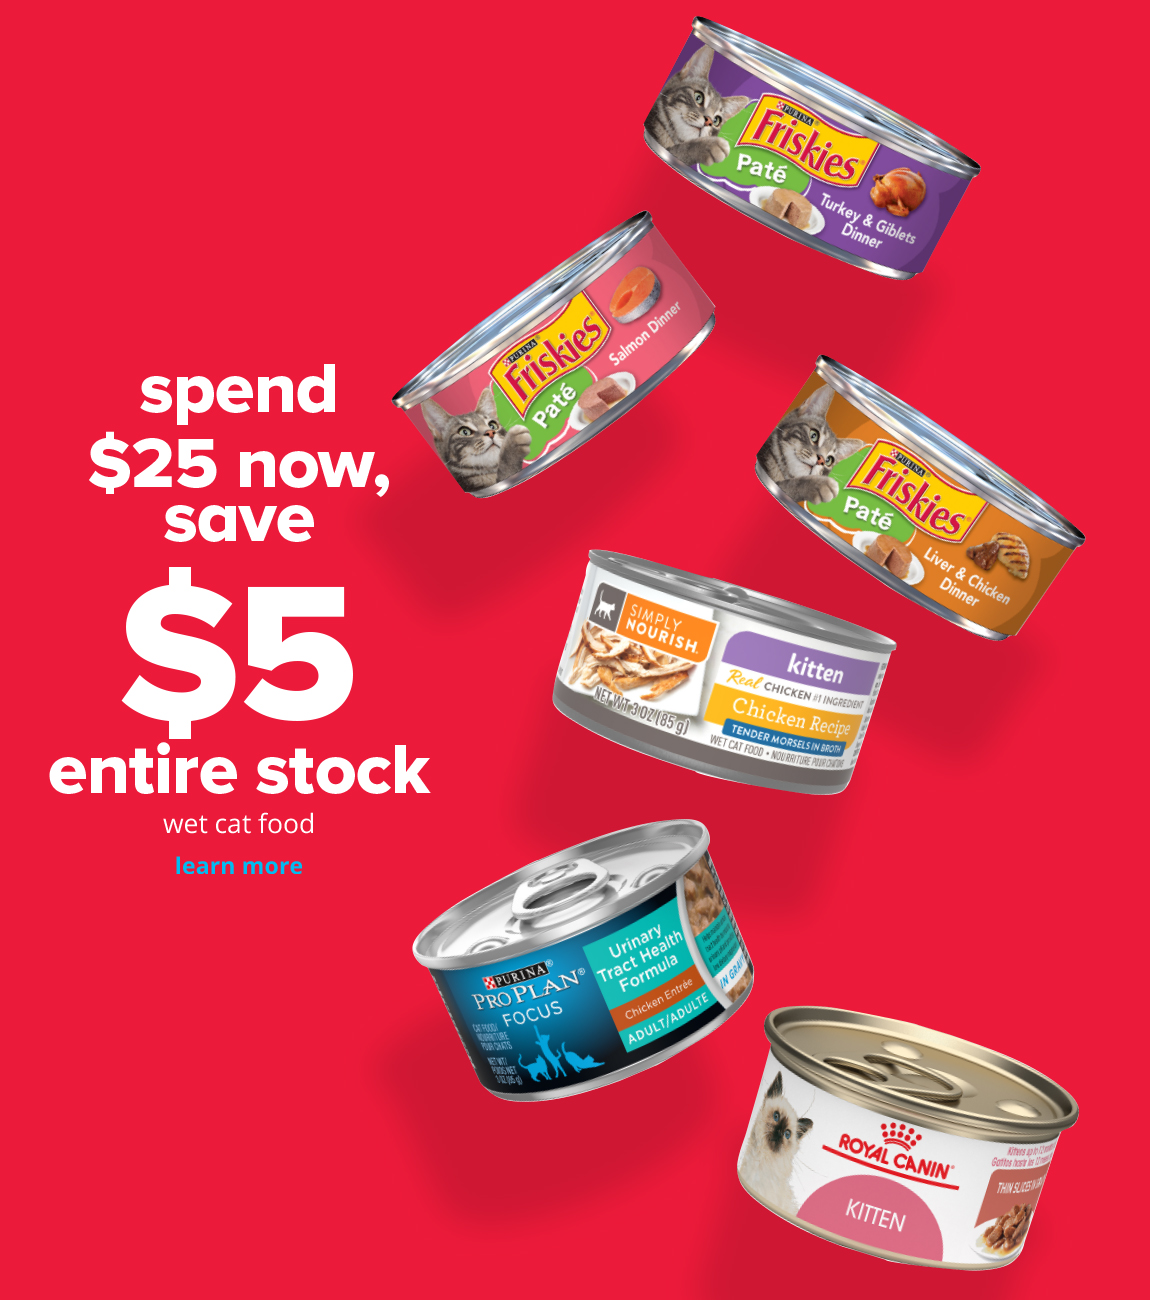 spend $25, save $5 now	entire stock wet cat food